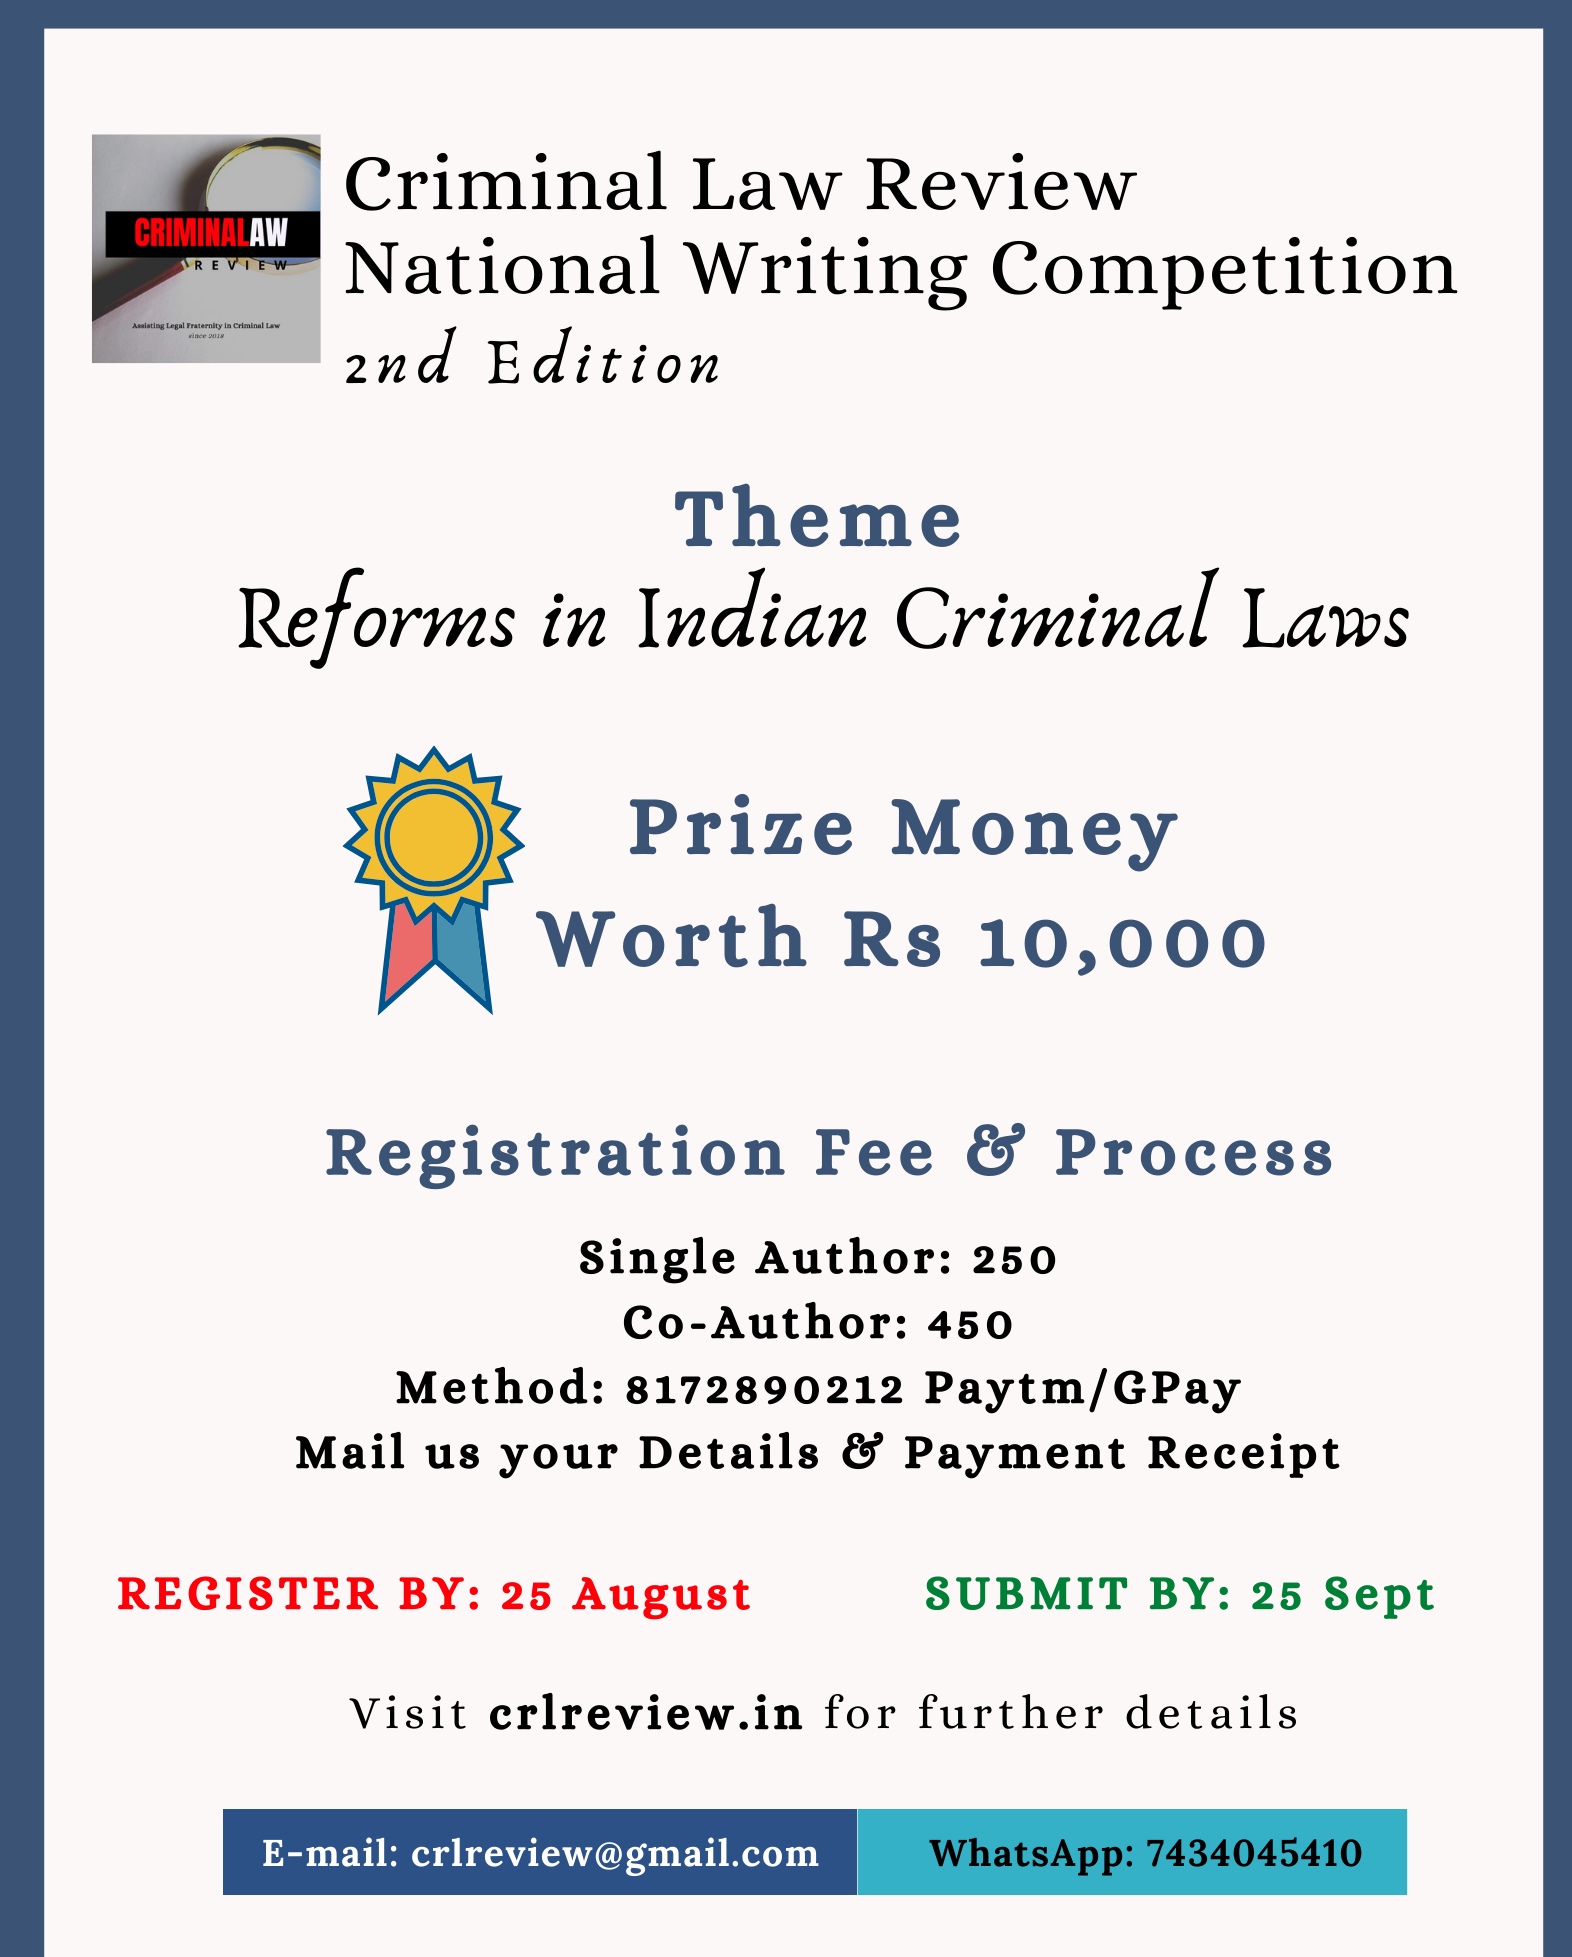 Criminal Law Review Writing Competition